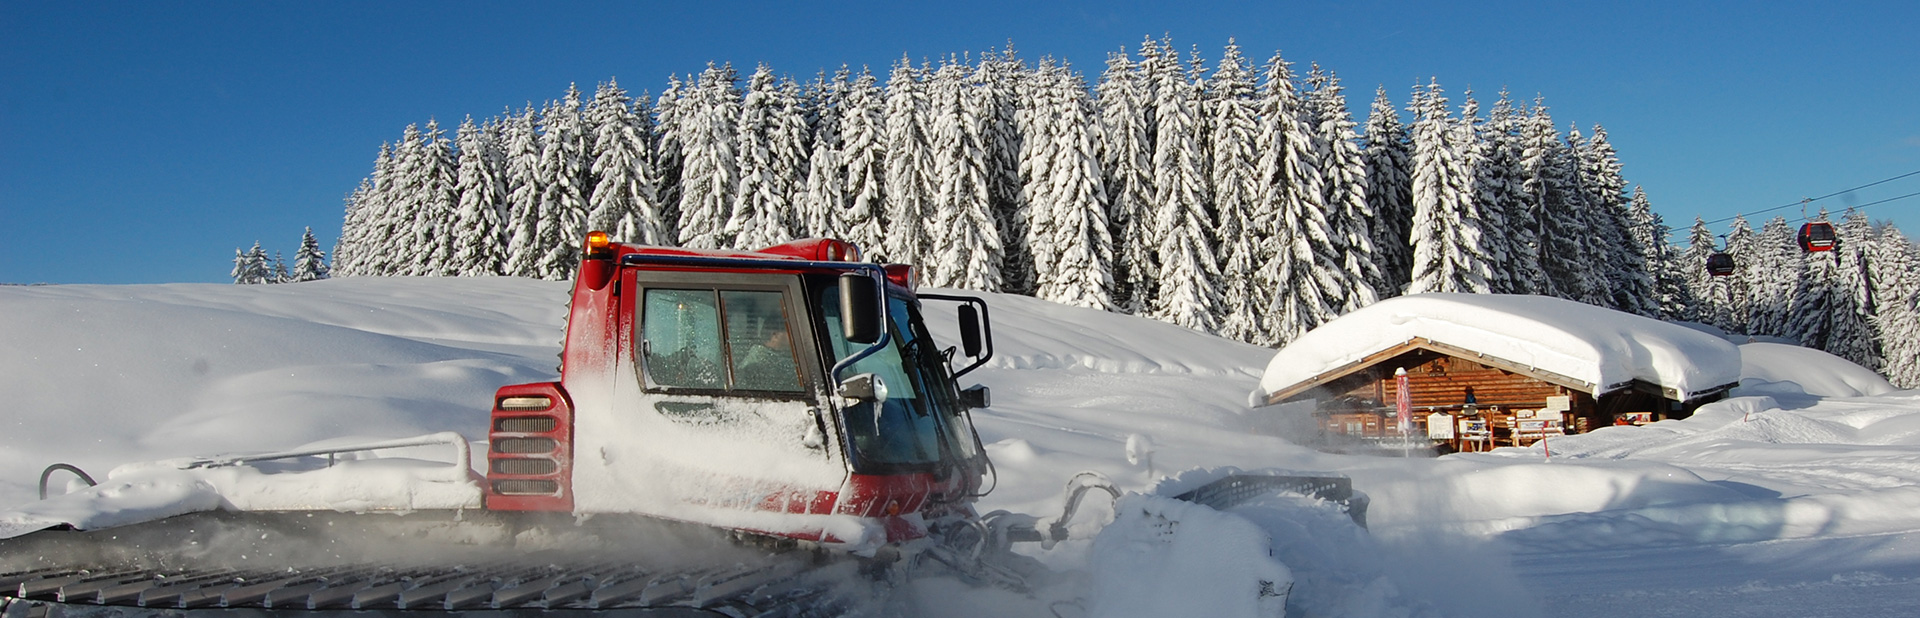 vorlage header almstueberl winter3